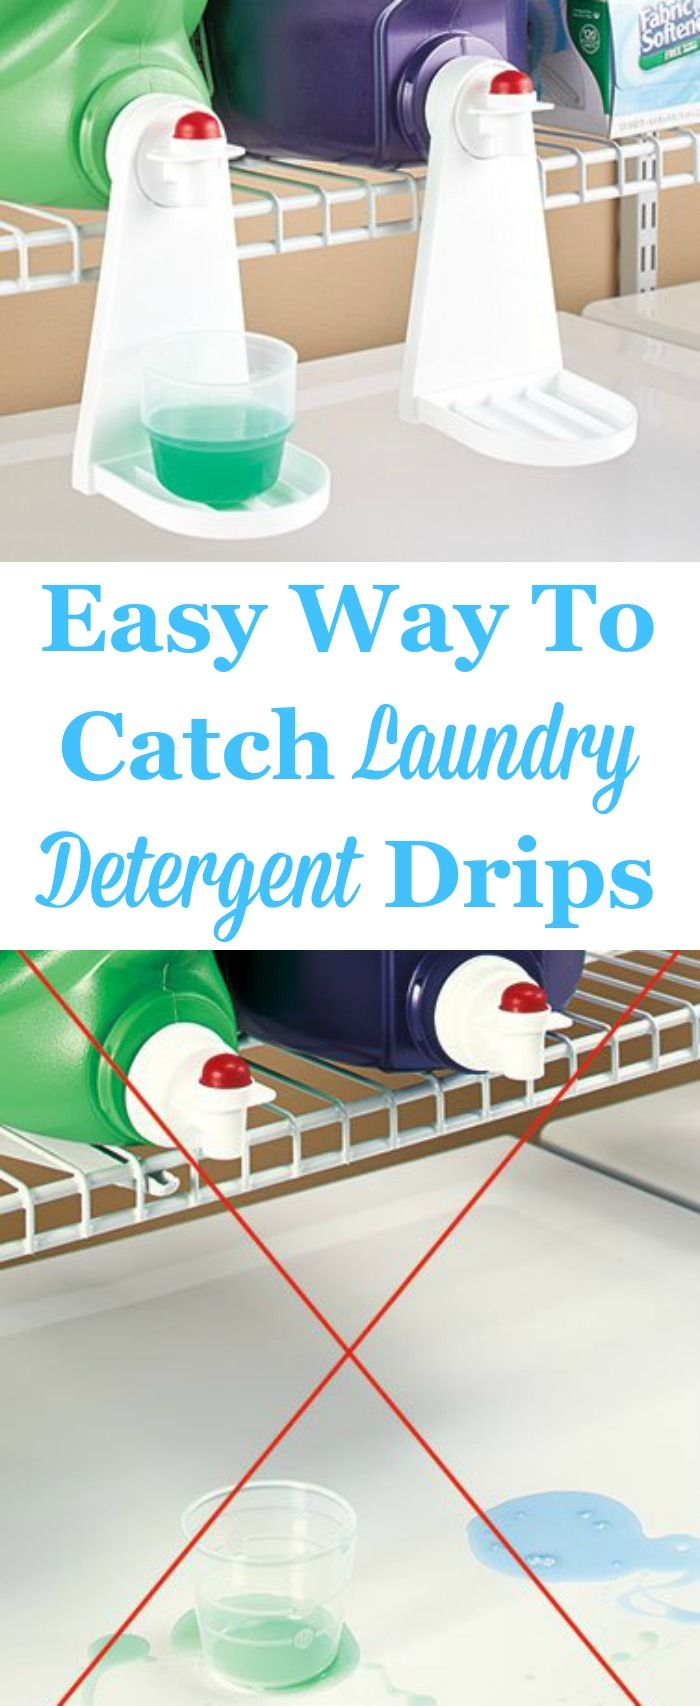 Do you use those large jugs of laundry detergent that seem to drip? If so, these Tidy Cup laundry detergent caps catch the drips so there's no more mess, and make it even easier to get your detergent each time.